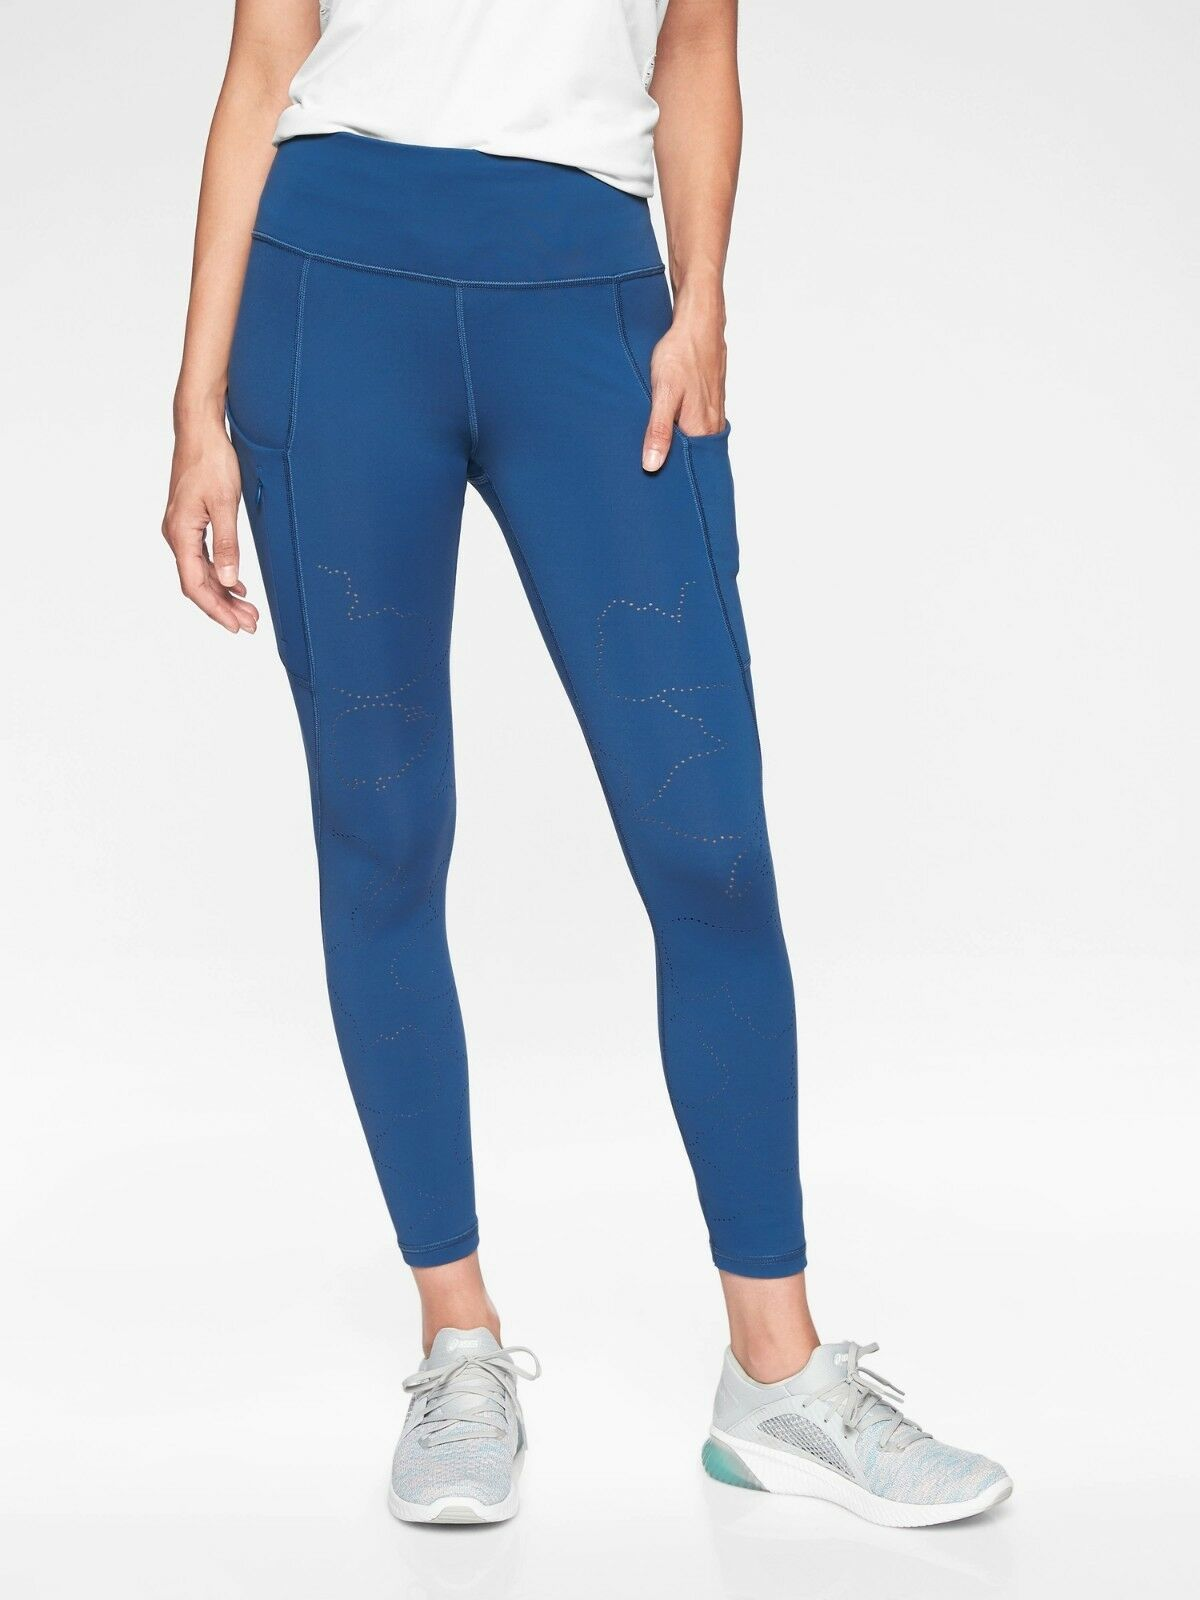 NWOT Athleta All In Reaction 7 8 Tight, Atlantis Blau Größe M        353547 N0324